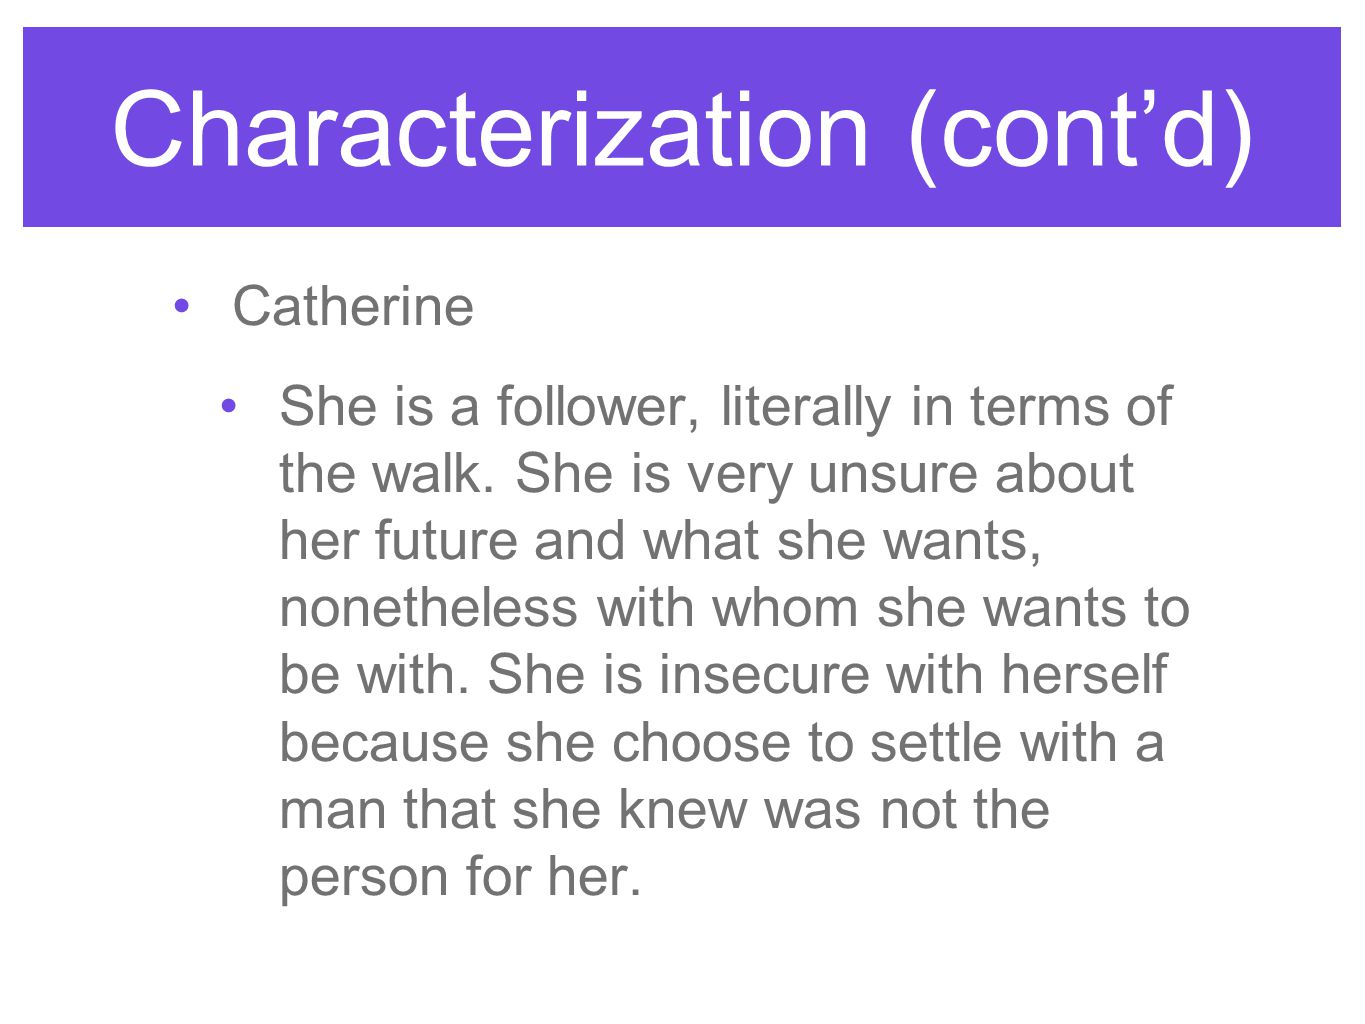 Characterization (cont'd) Catherine She is a follower, literally in terms of the walk.